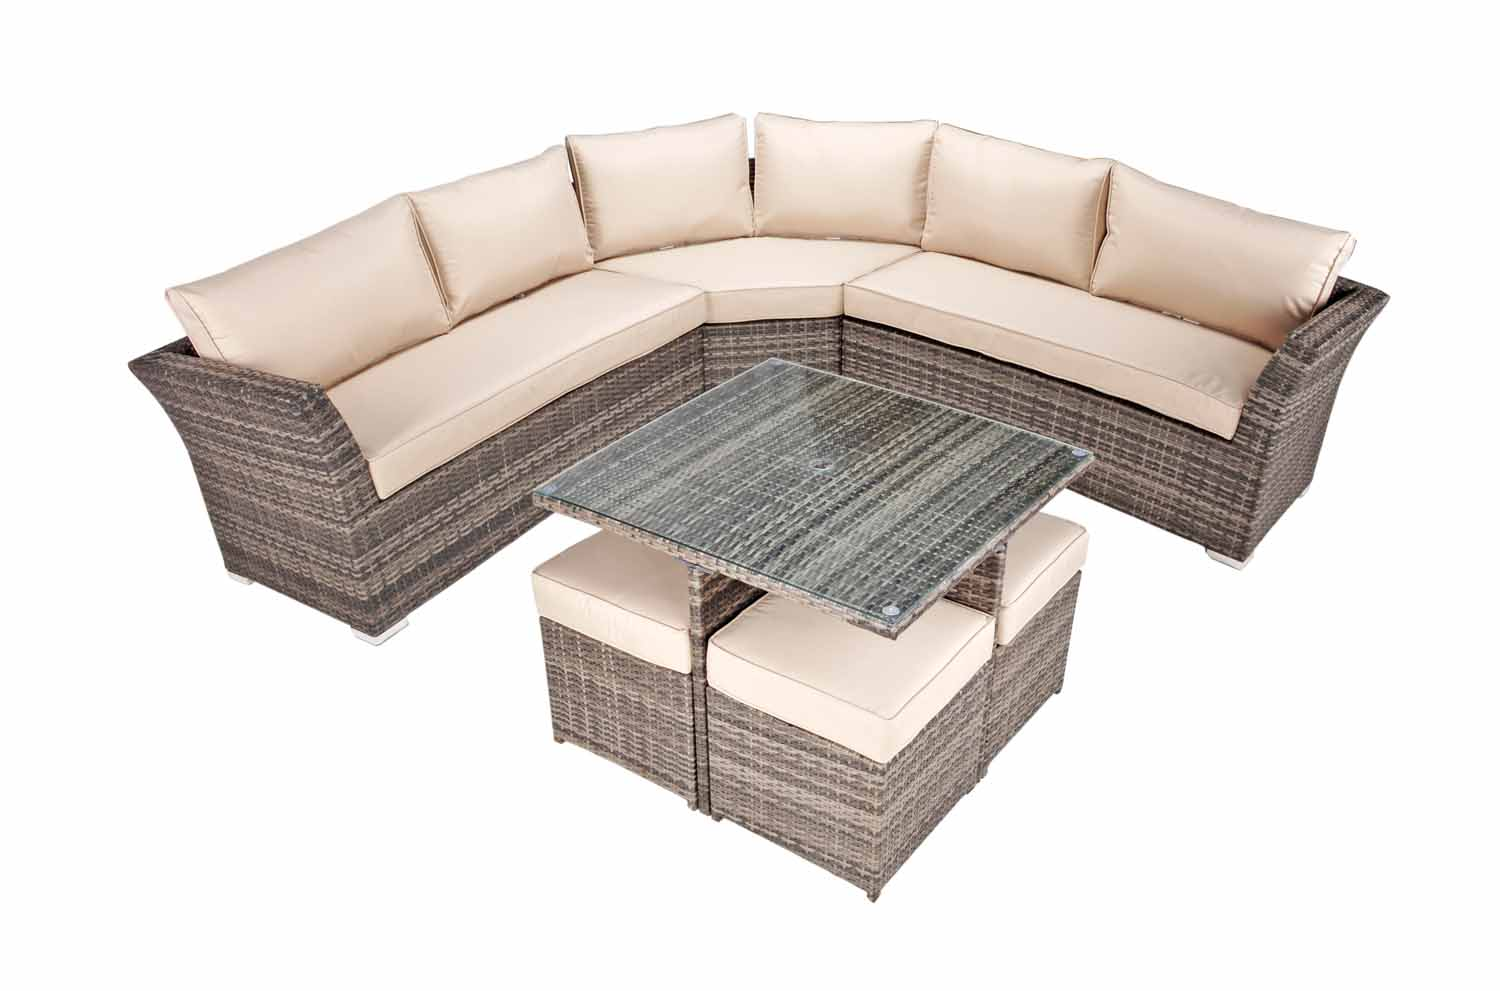 https://www.firstfurniture.co.uk/pub/media/catalog/product/k/e/kensington_curved_corner_sofa_set_with_cube_table_1.jpg